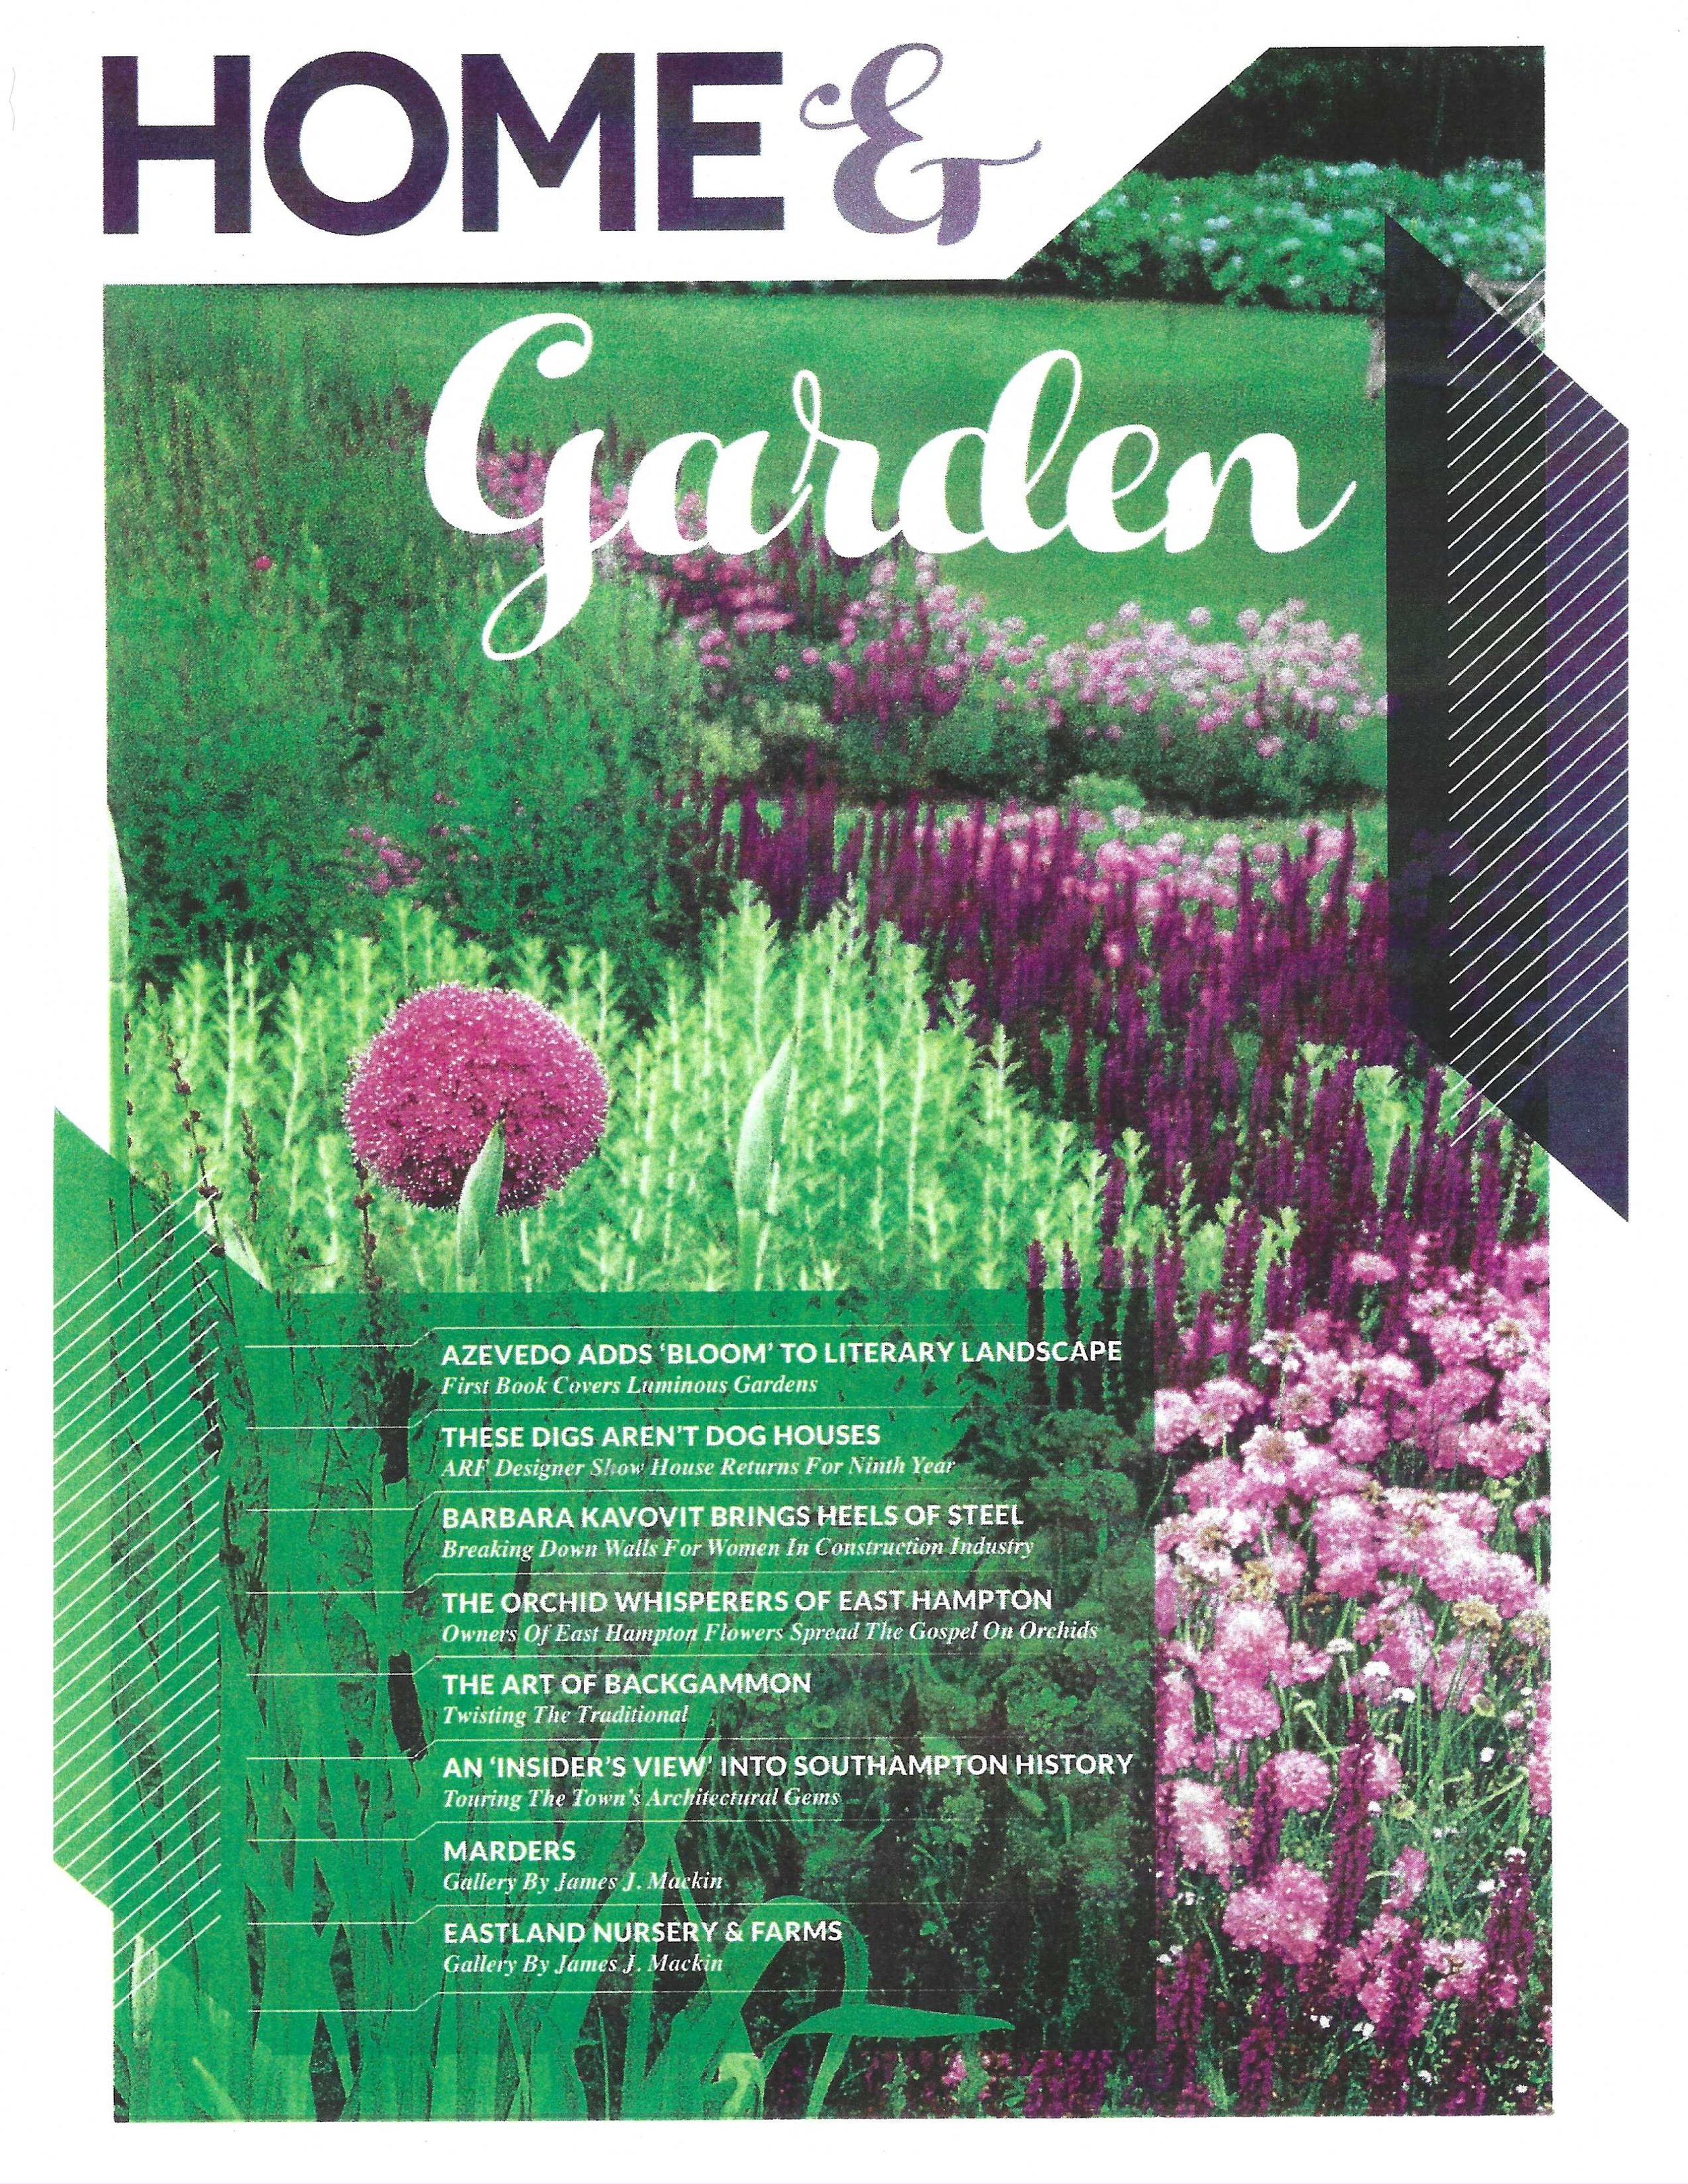 62 The Independent - Home & Garden_May 2019 2.jpg